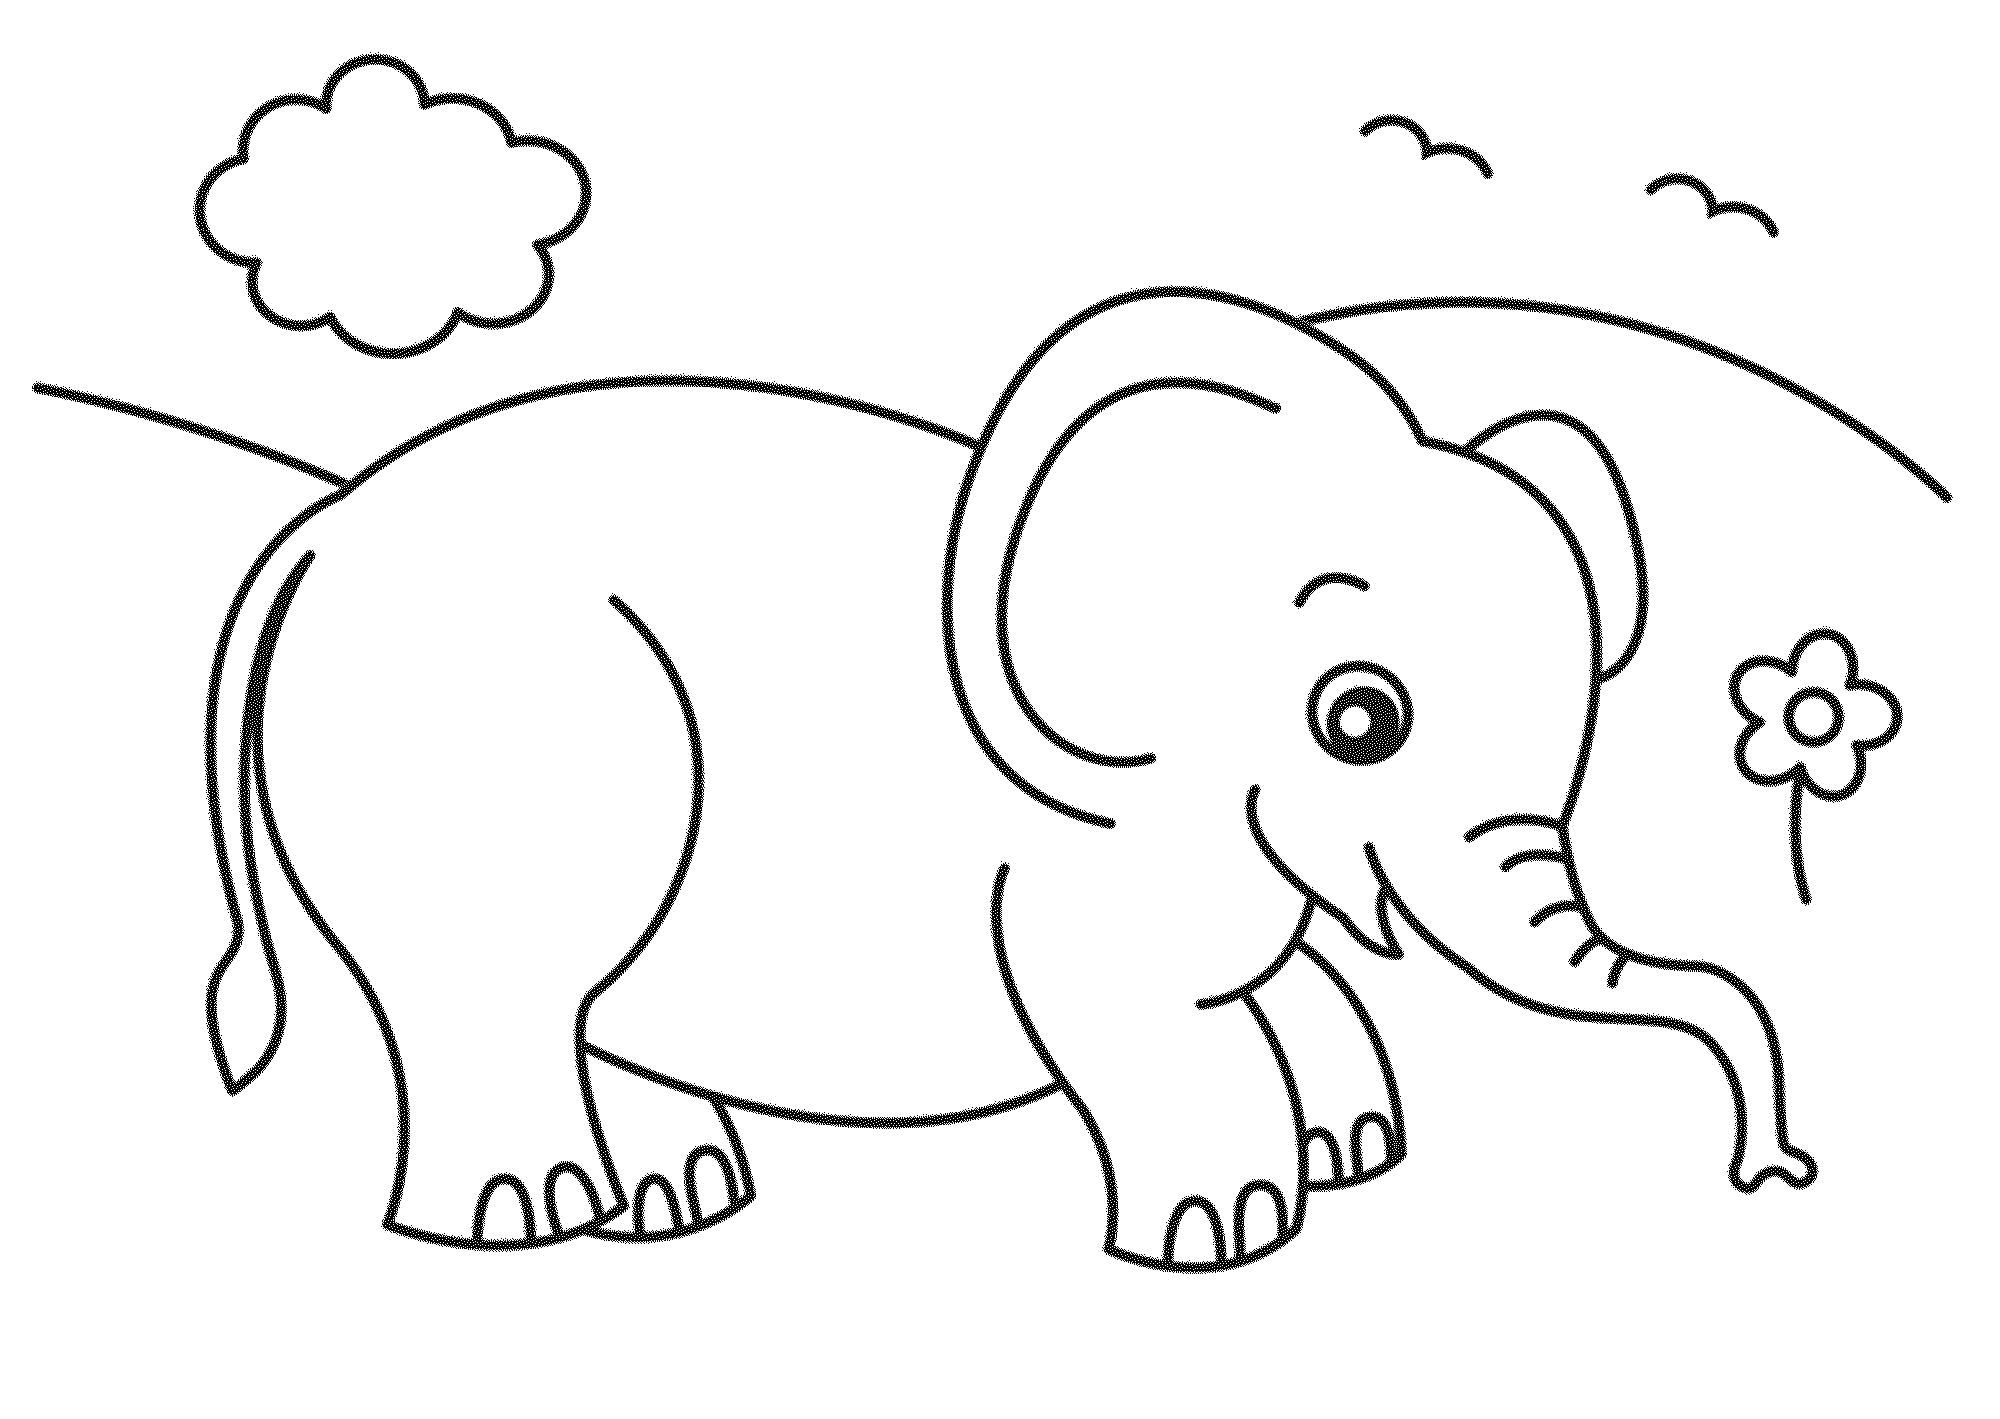 elephant coloring pictures print download teaching kids through elephant coloring coloring pictures elephant